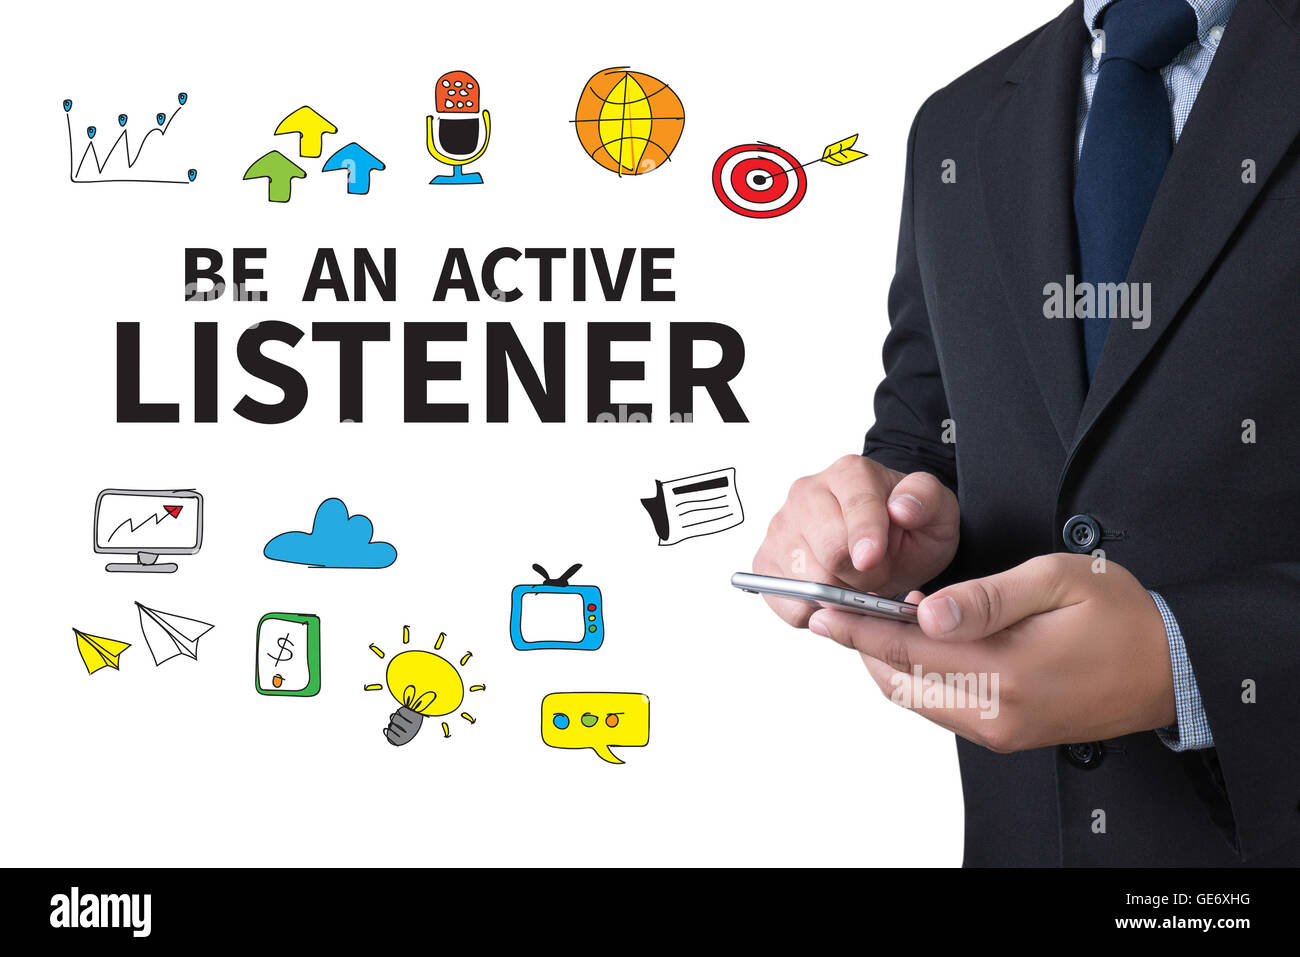 BE AN ACTIVE LISTENER businessman working use smartphone - Stock Image